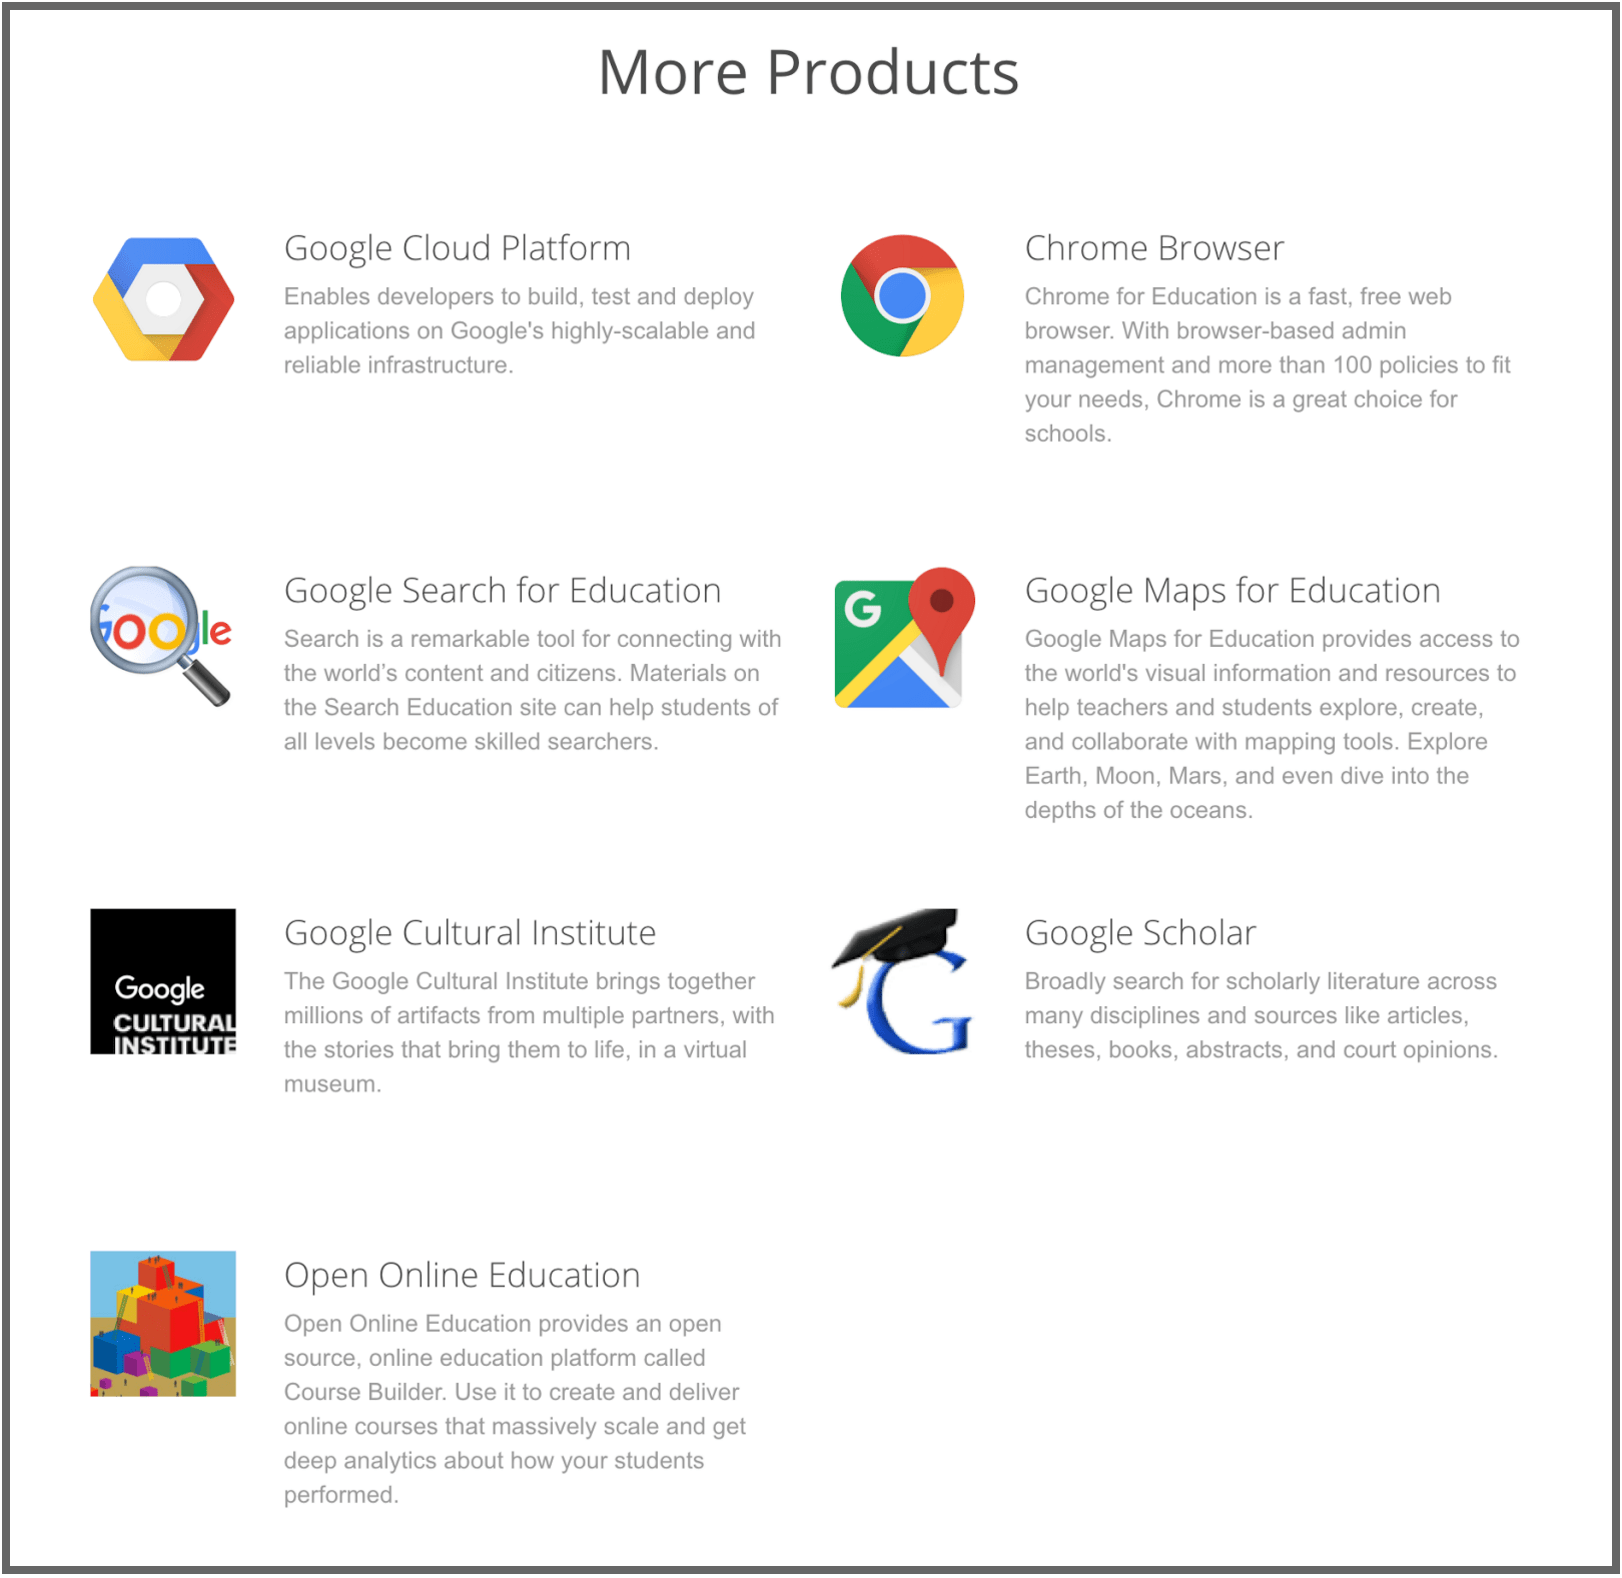 Other G Suite Products